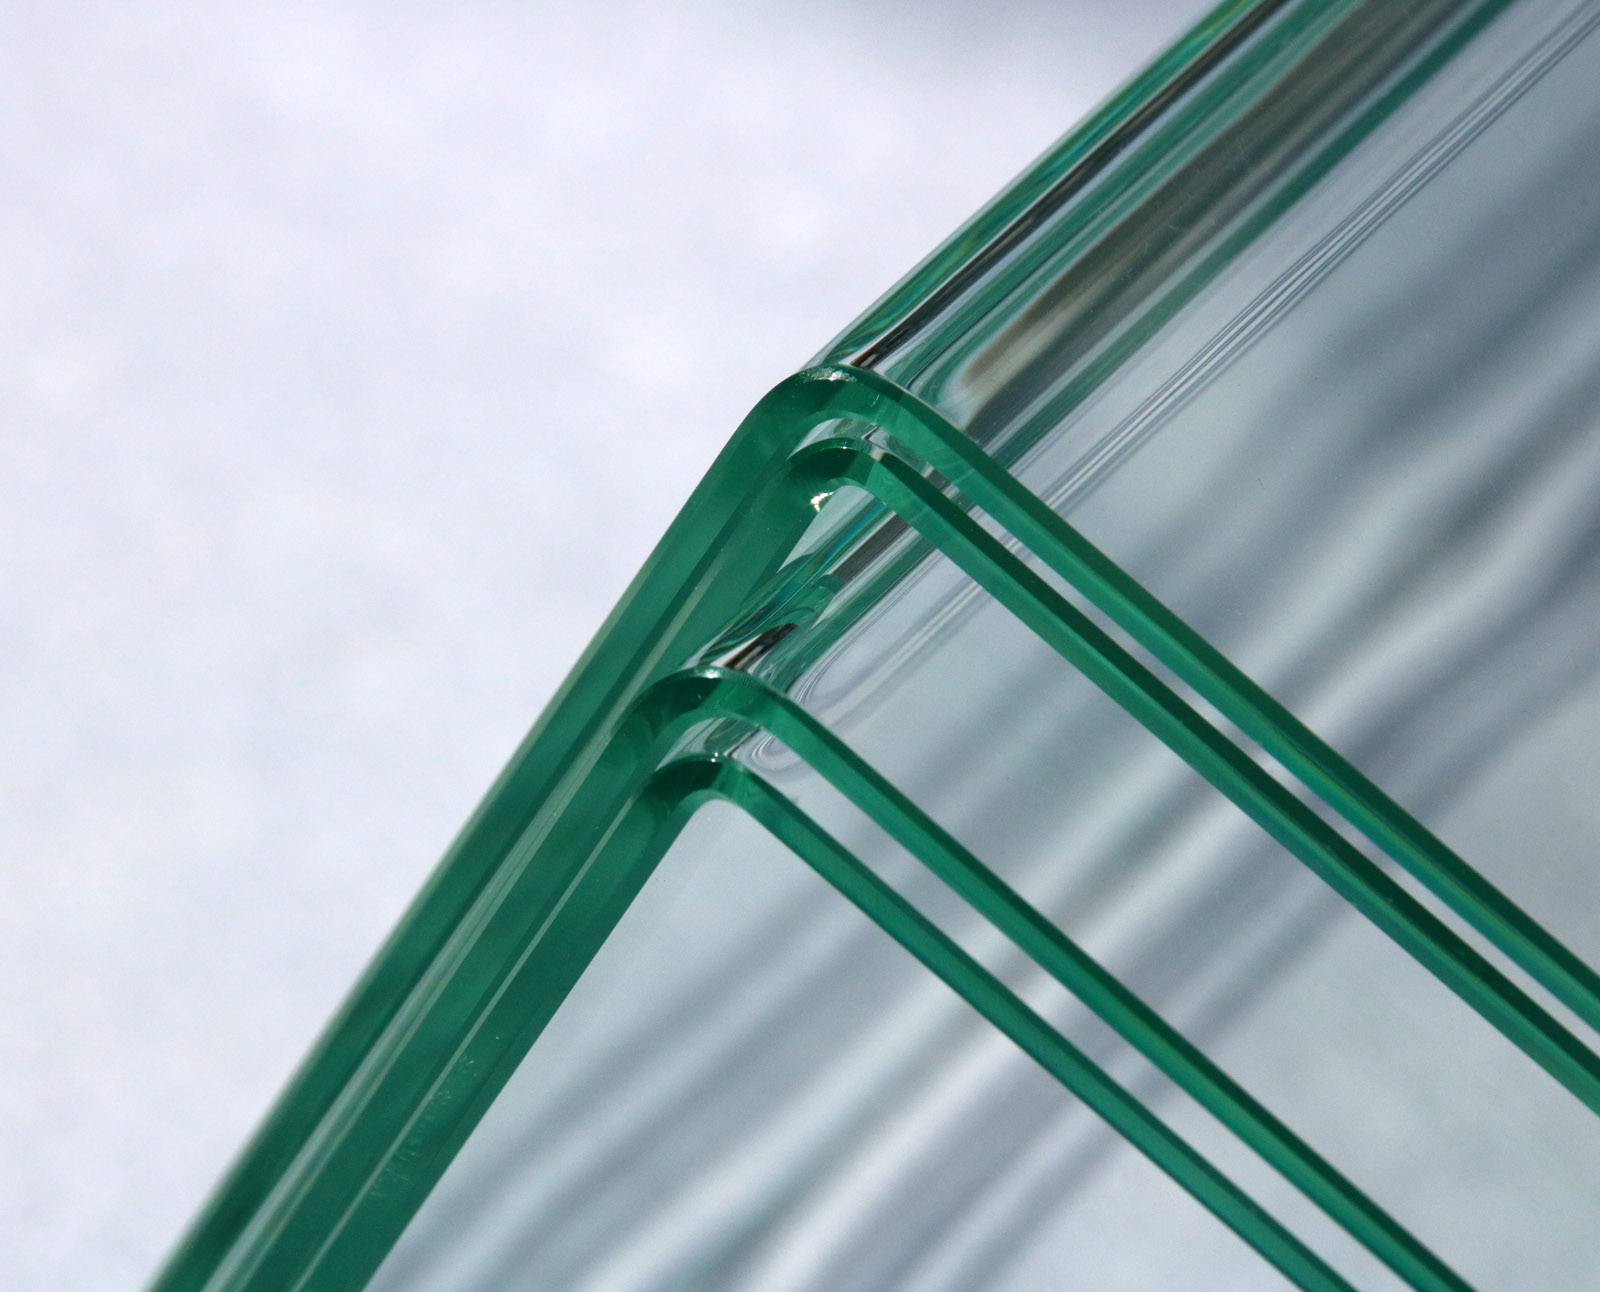 German tech bends glass sheets at right angles